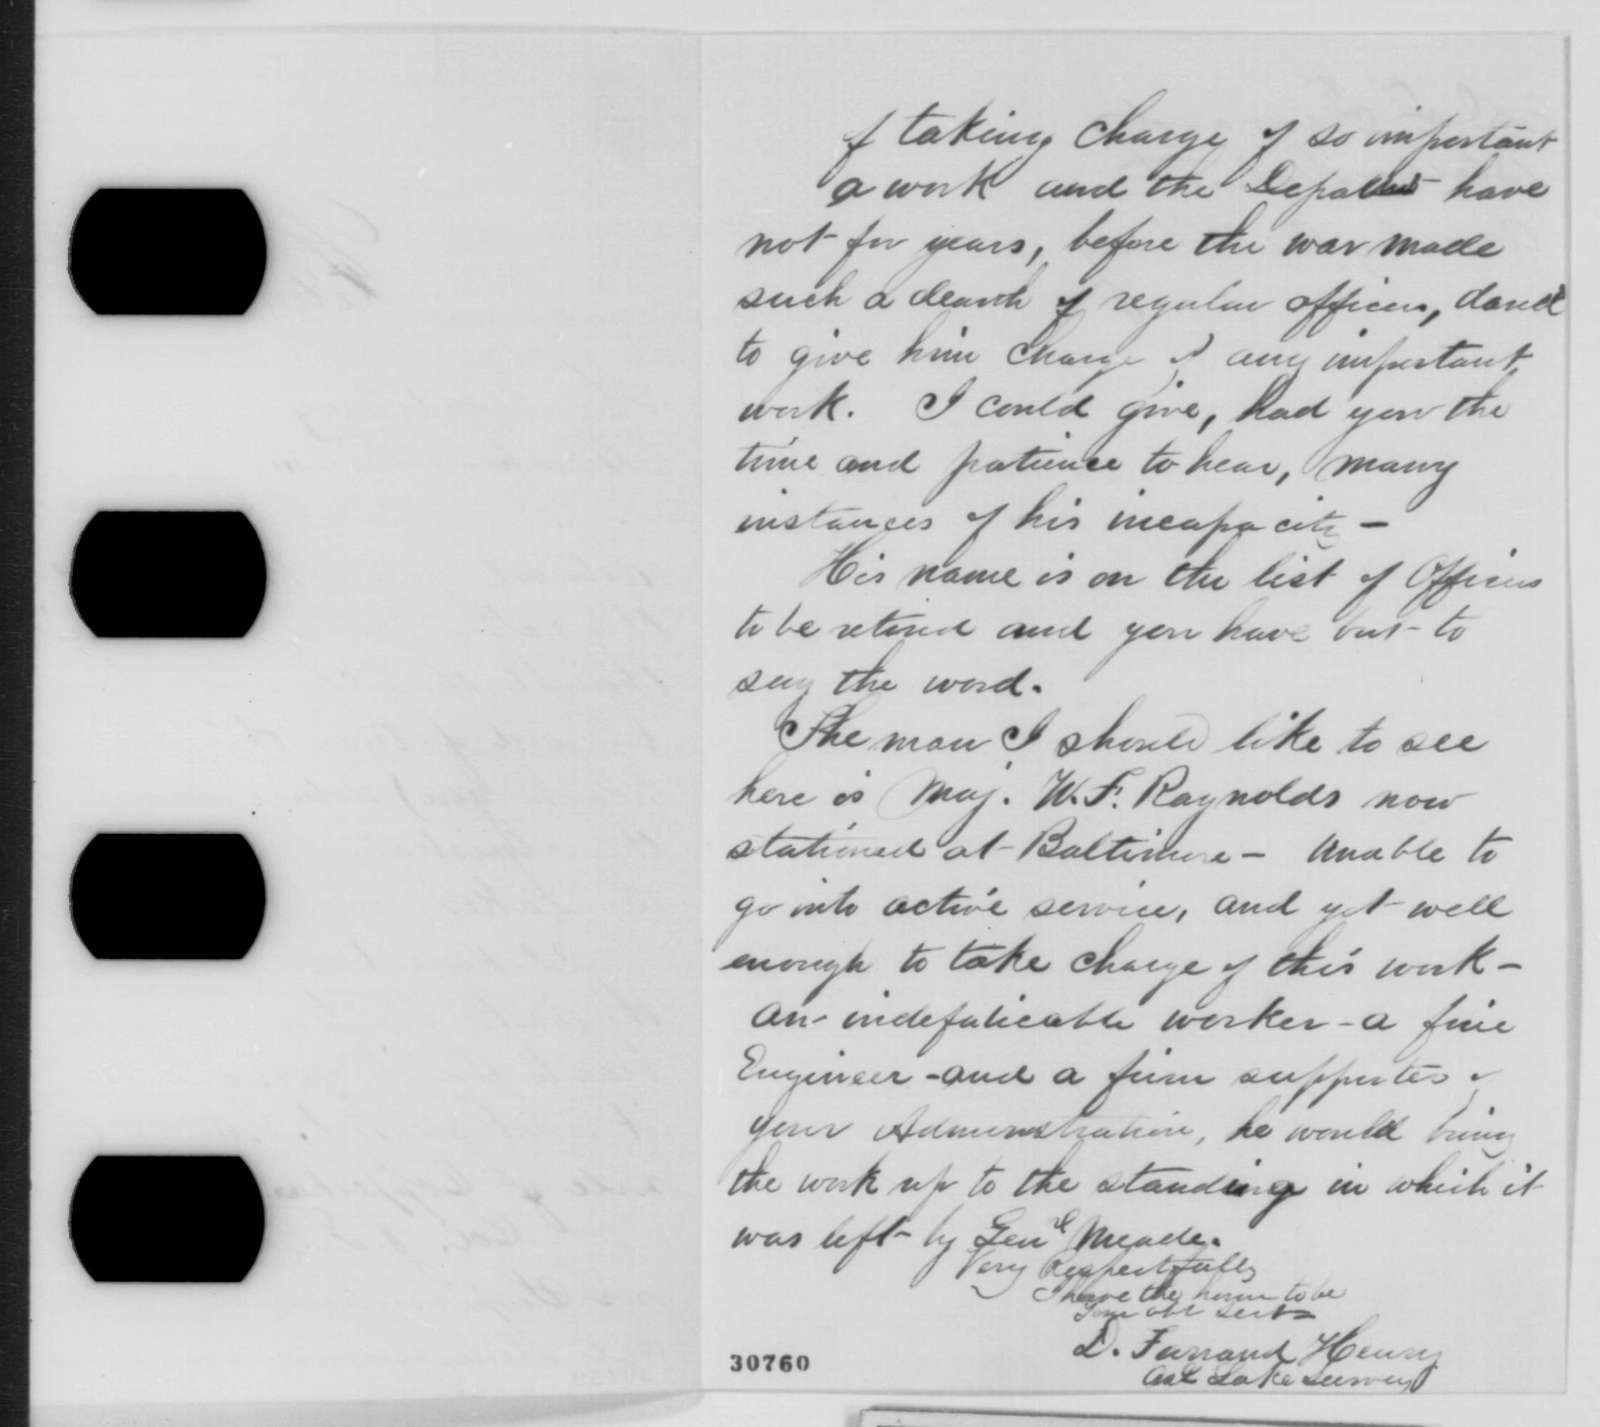 D. Farrand Henry to Abraham Lincoln, Monday, February 22, 1864  (Survey of Great Lakes)